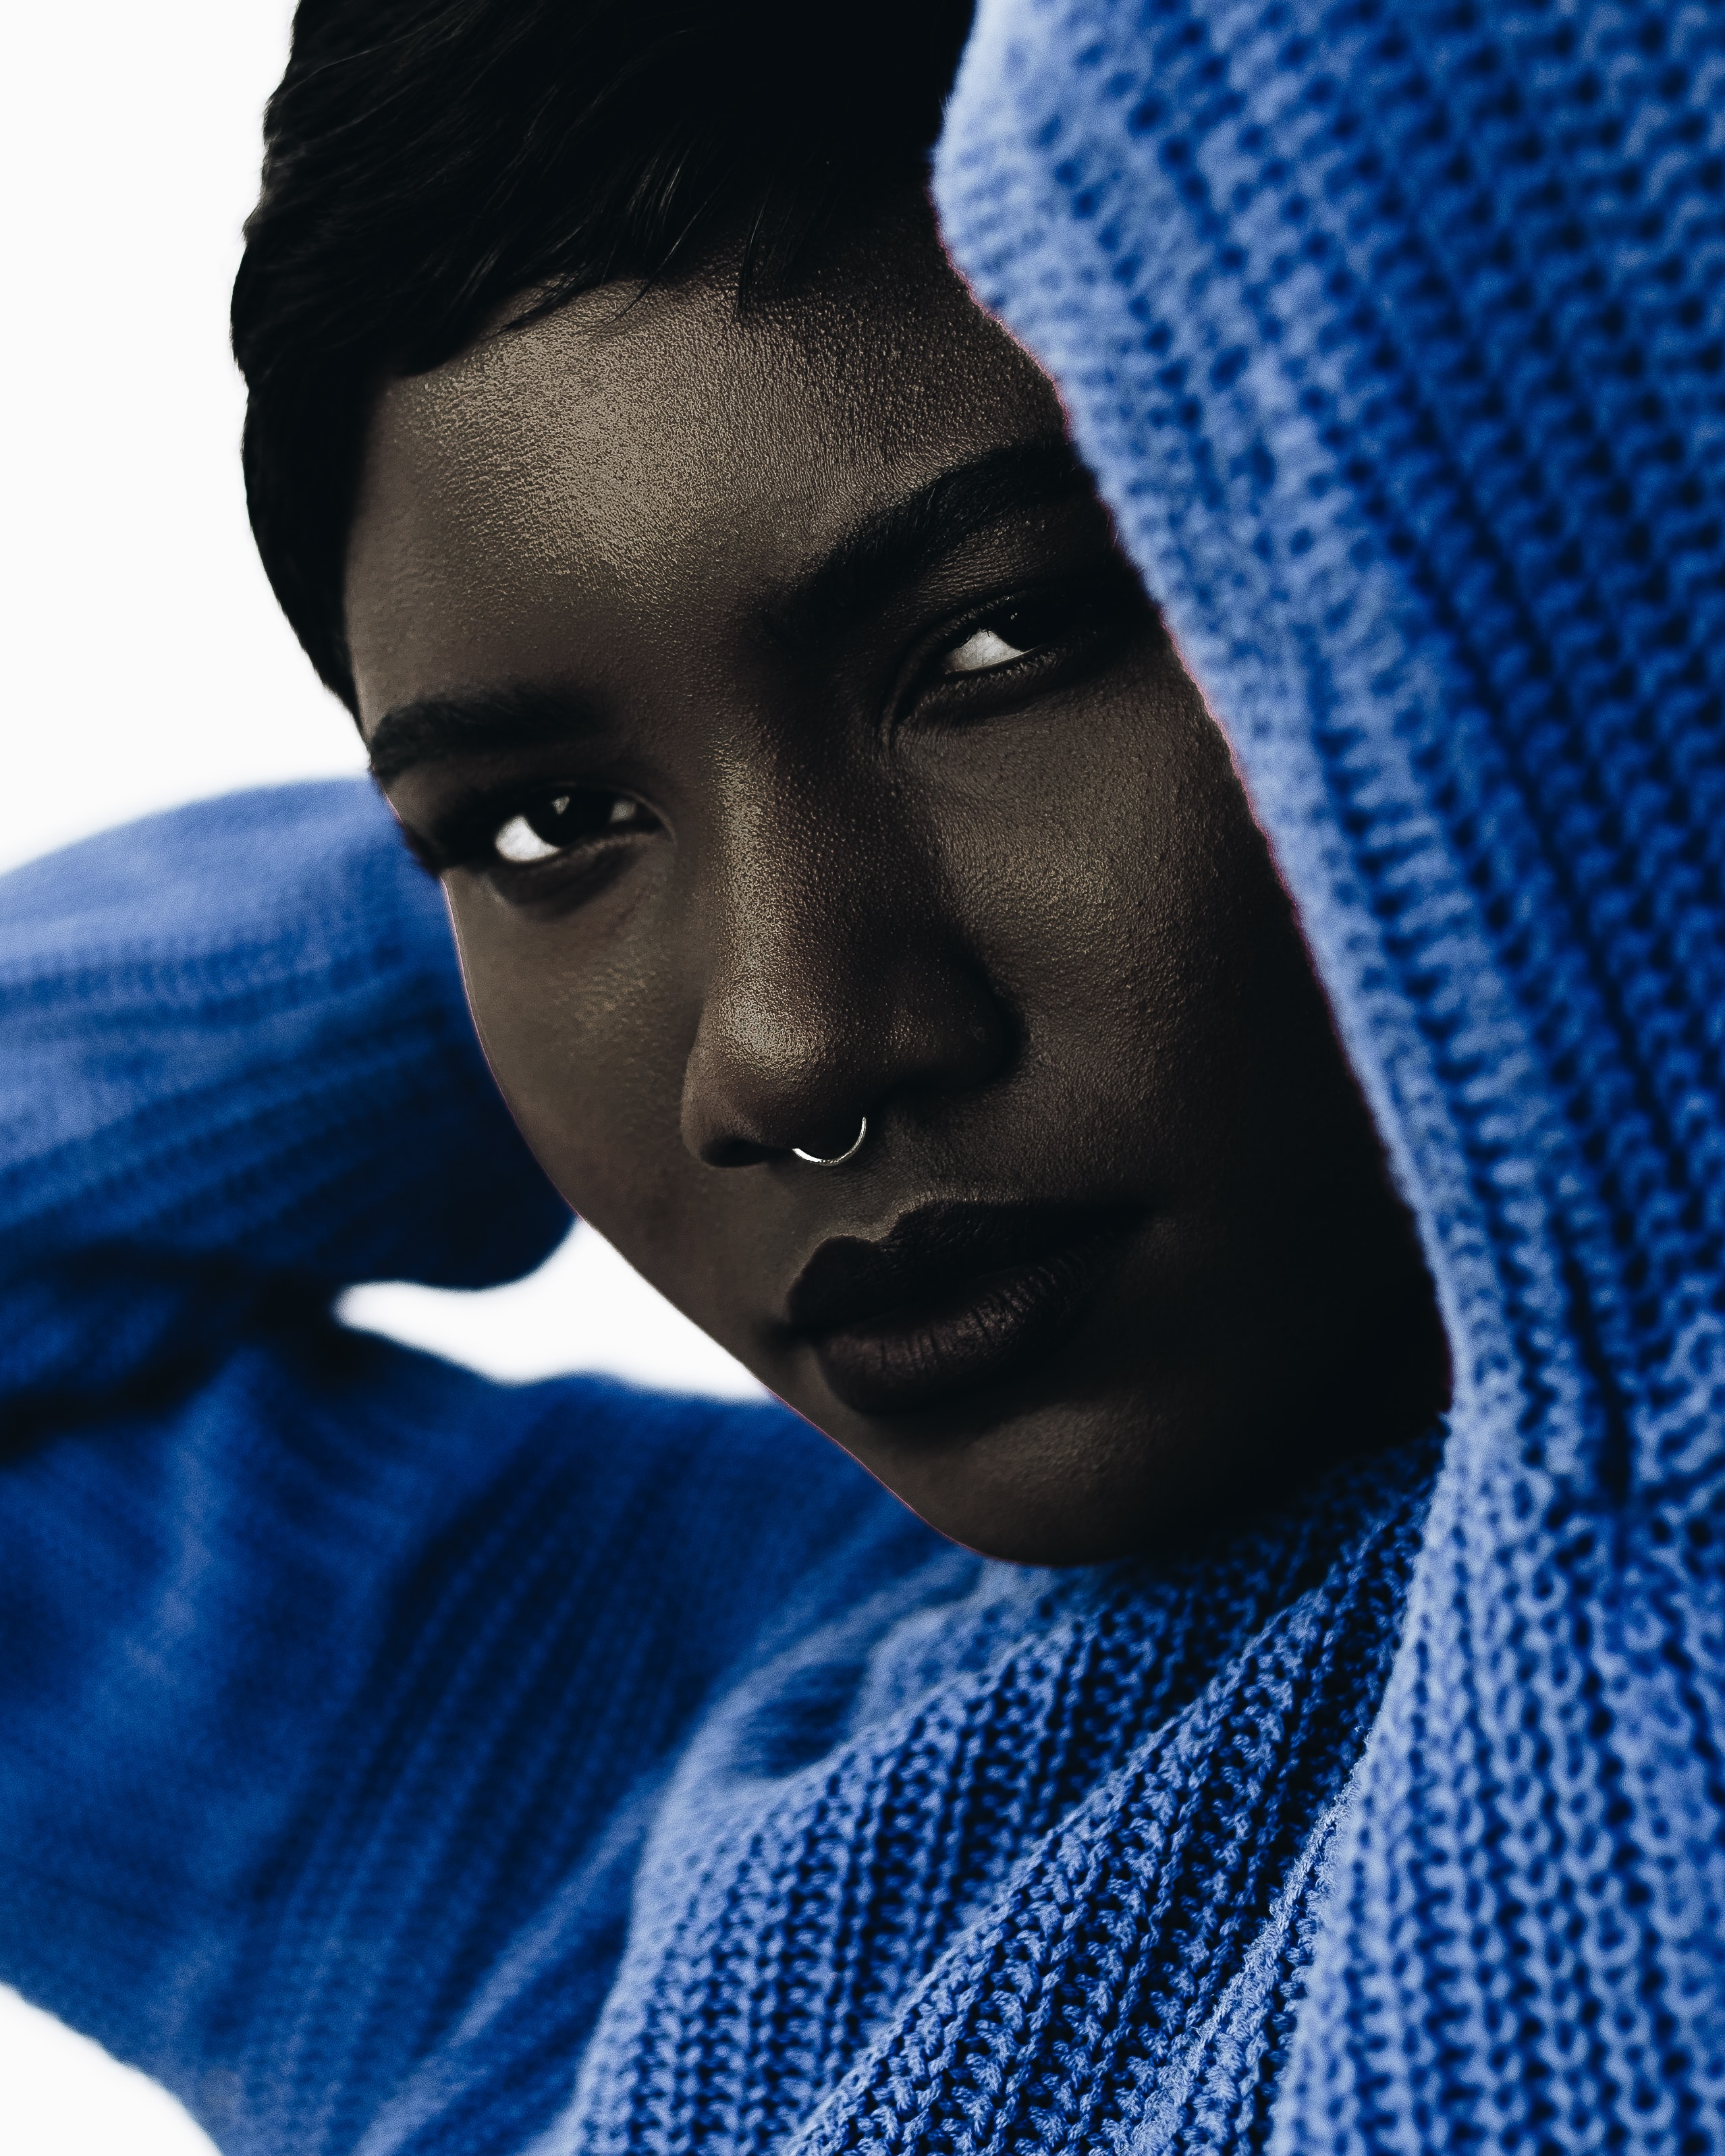 woman wearing blue knit sweatshirt